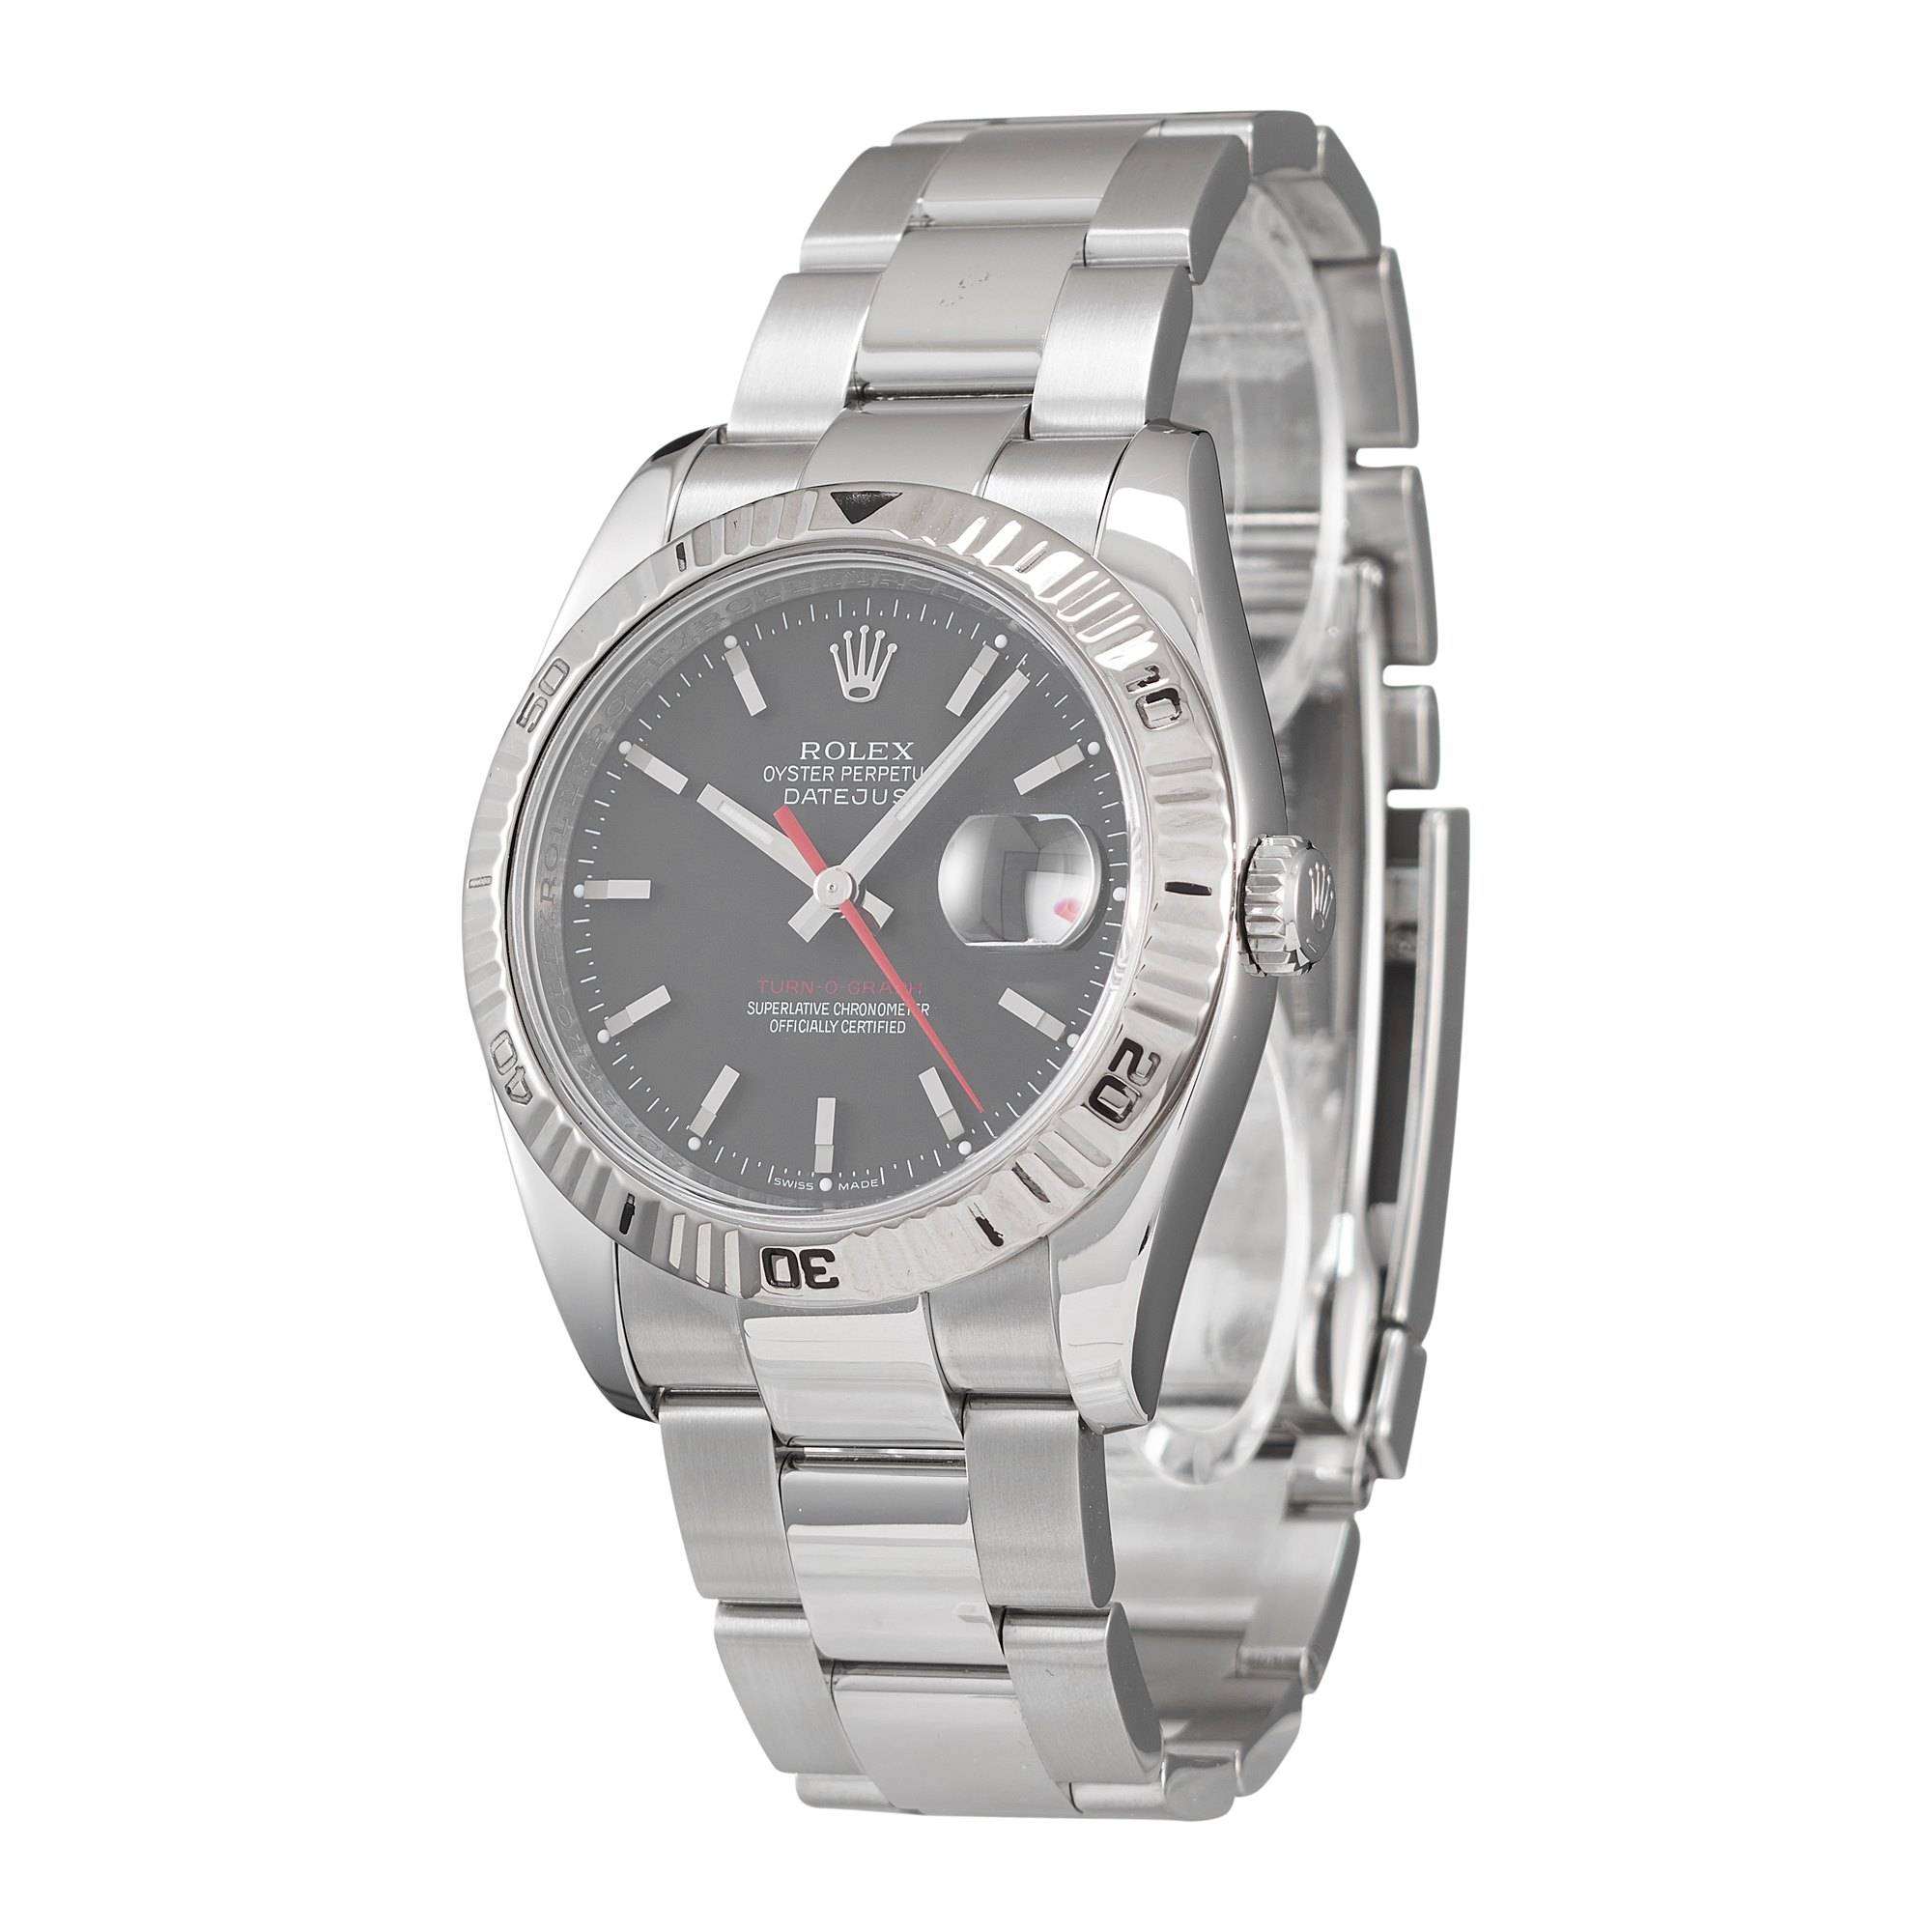 Rolex Datejust 36 Turn-O-Graph Stainless Steel & White Gold 116264